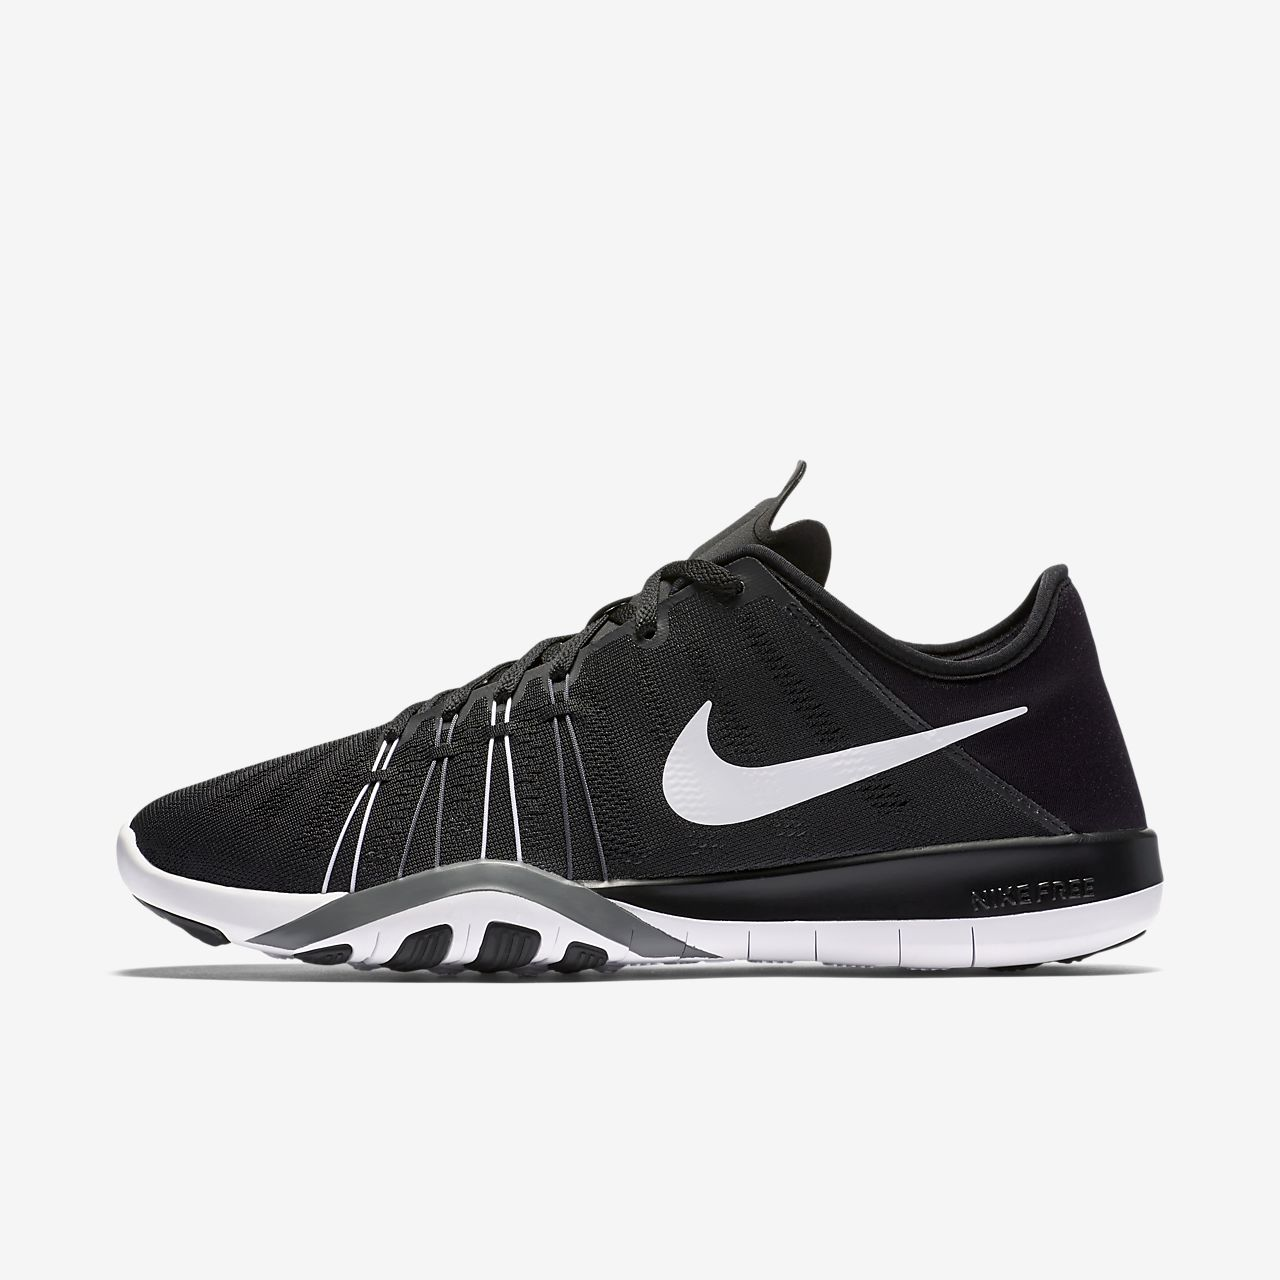 nike free trainer women's review